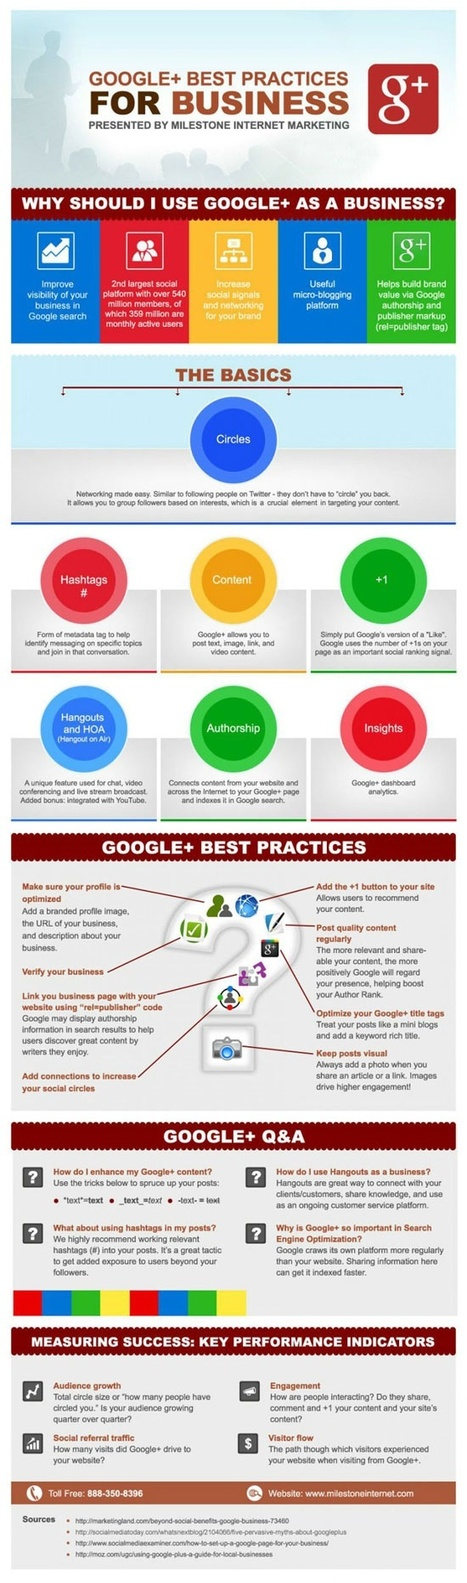 #Infographic How to Use Google+ for Business | SEO Local #SEOLocal | Scoop.it